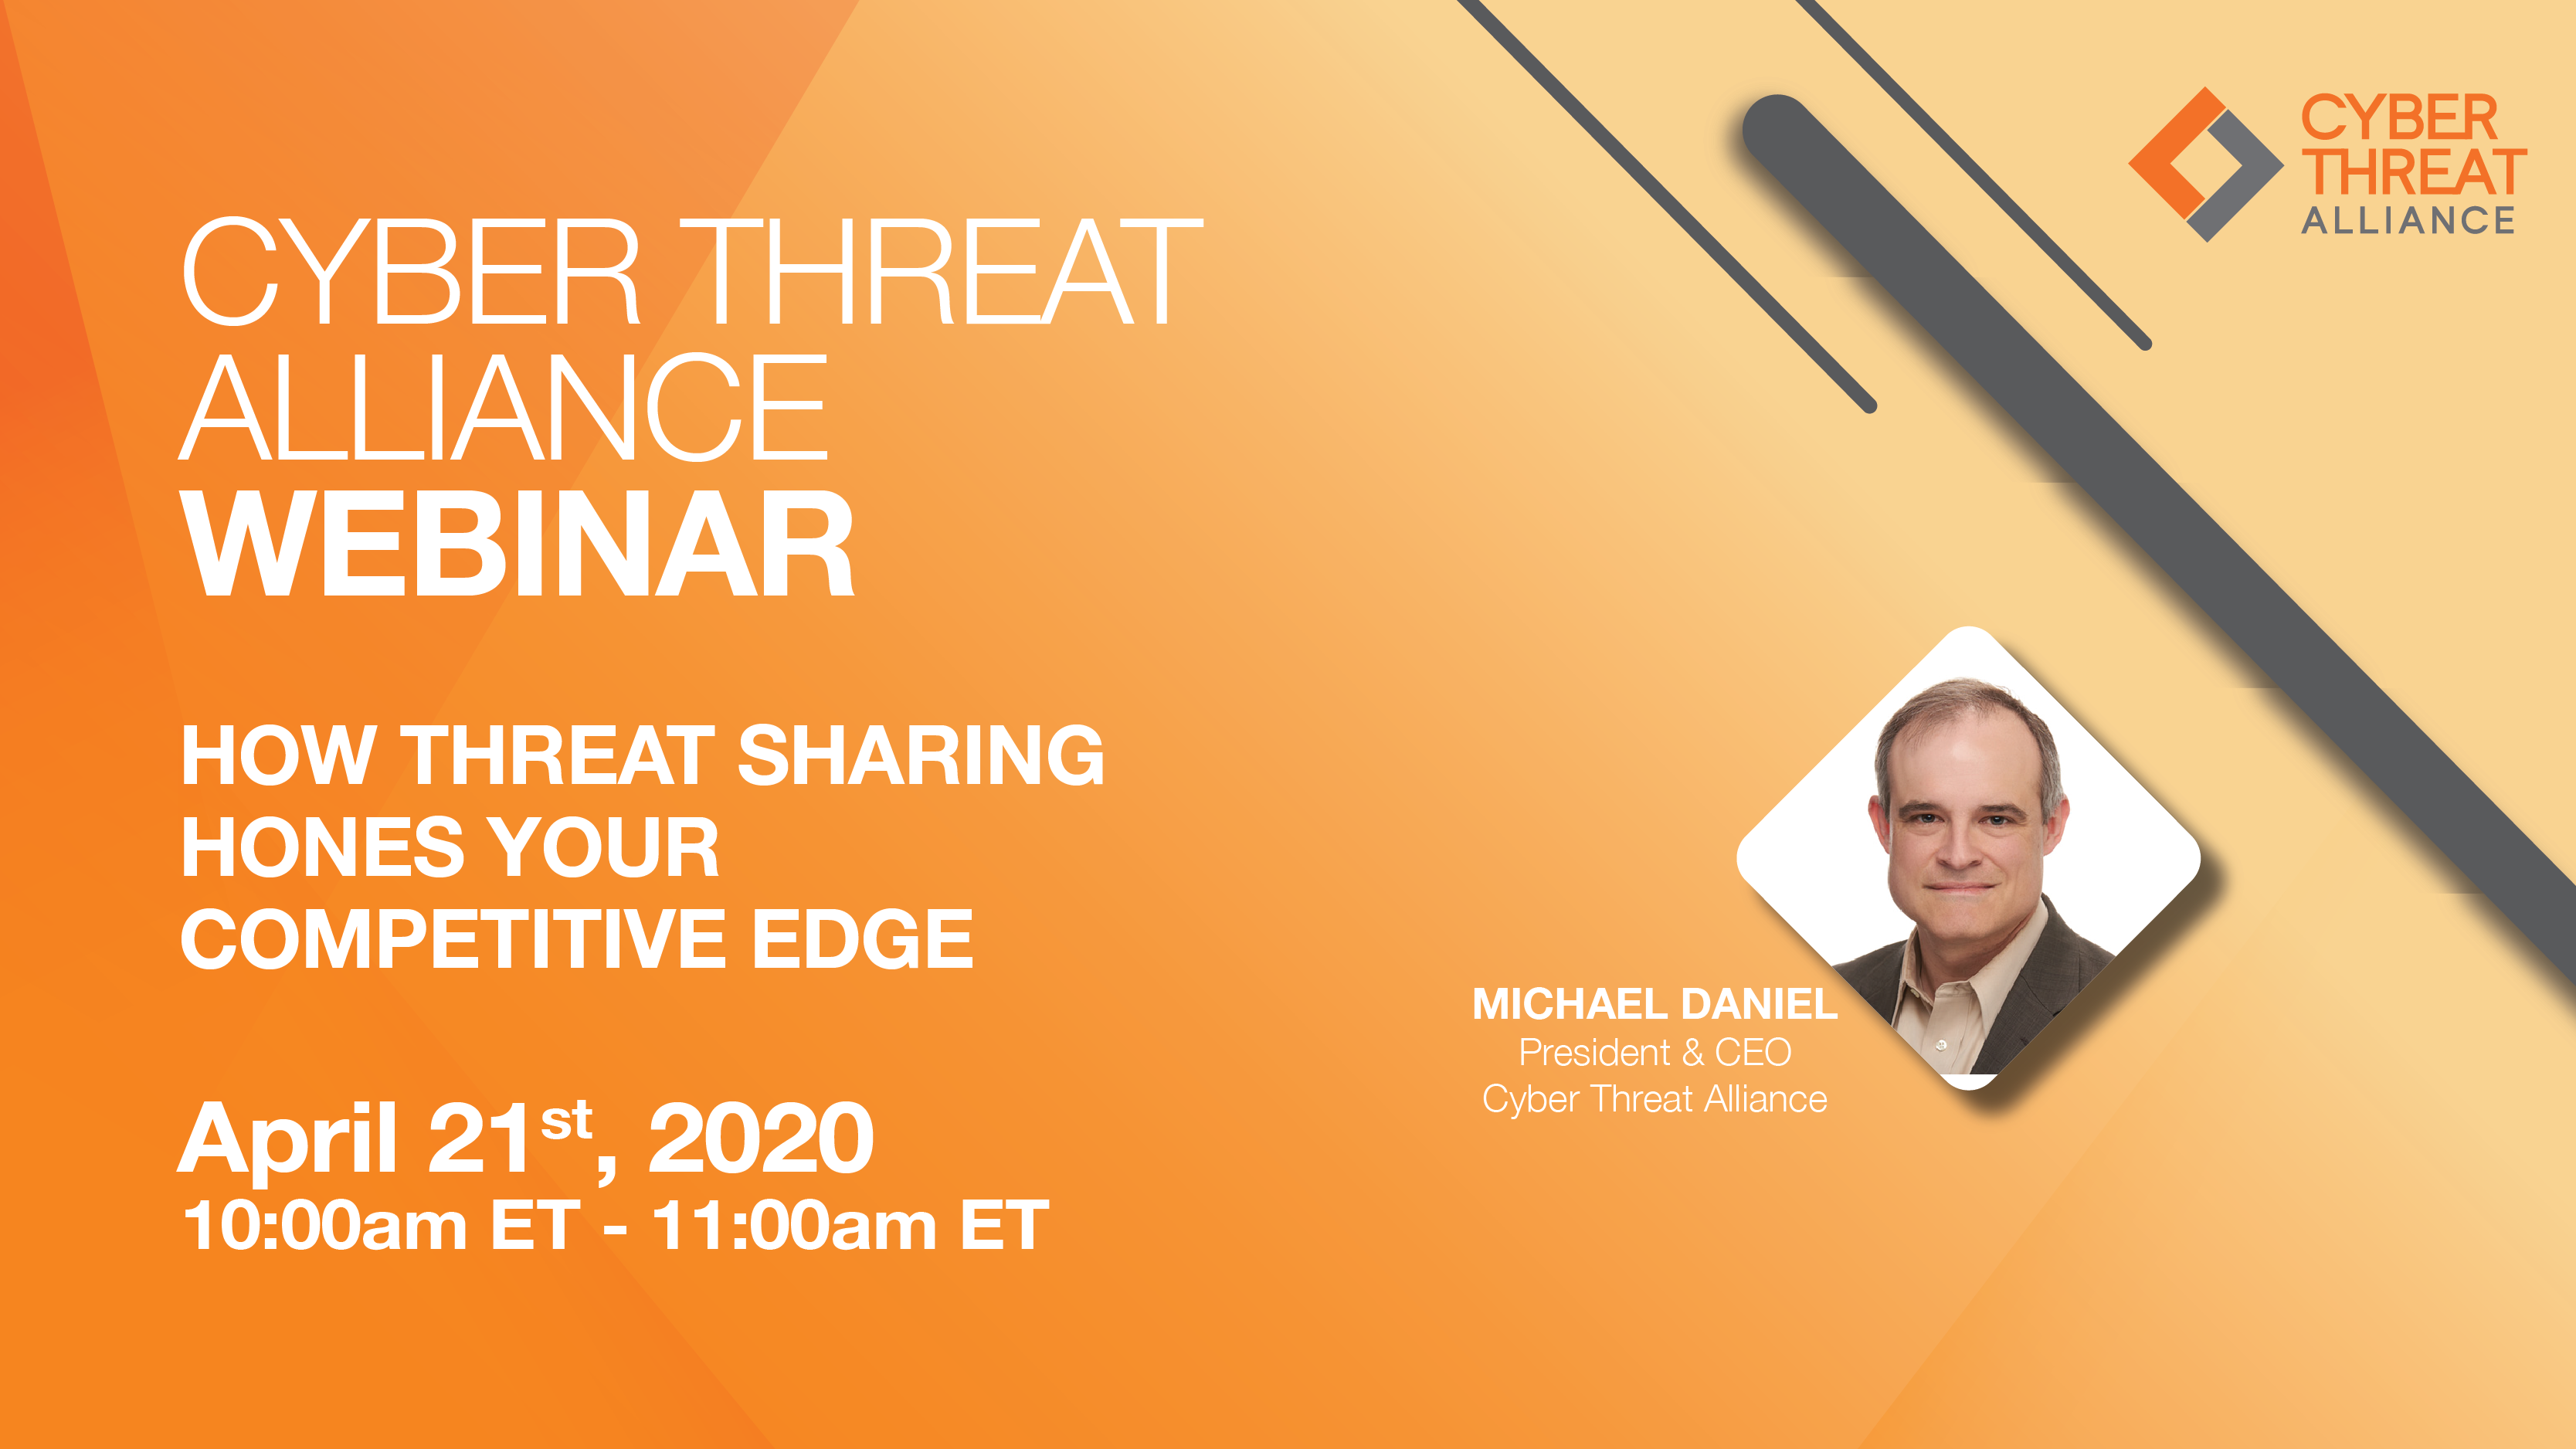 Watch the CTA Webinar, How Threat Sharing Hones Your Competitive Edge on April 21st at 10AM ET.